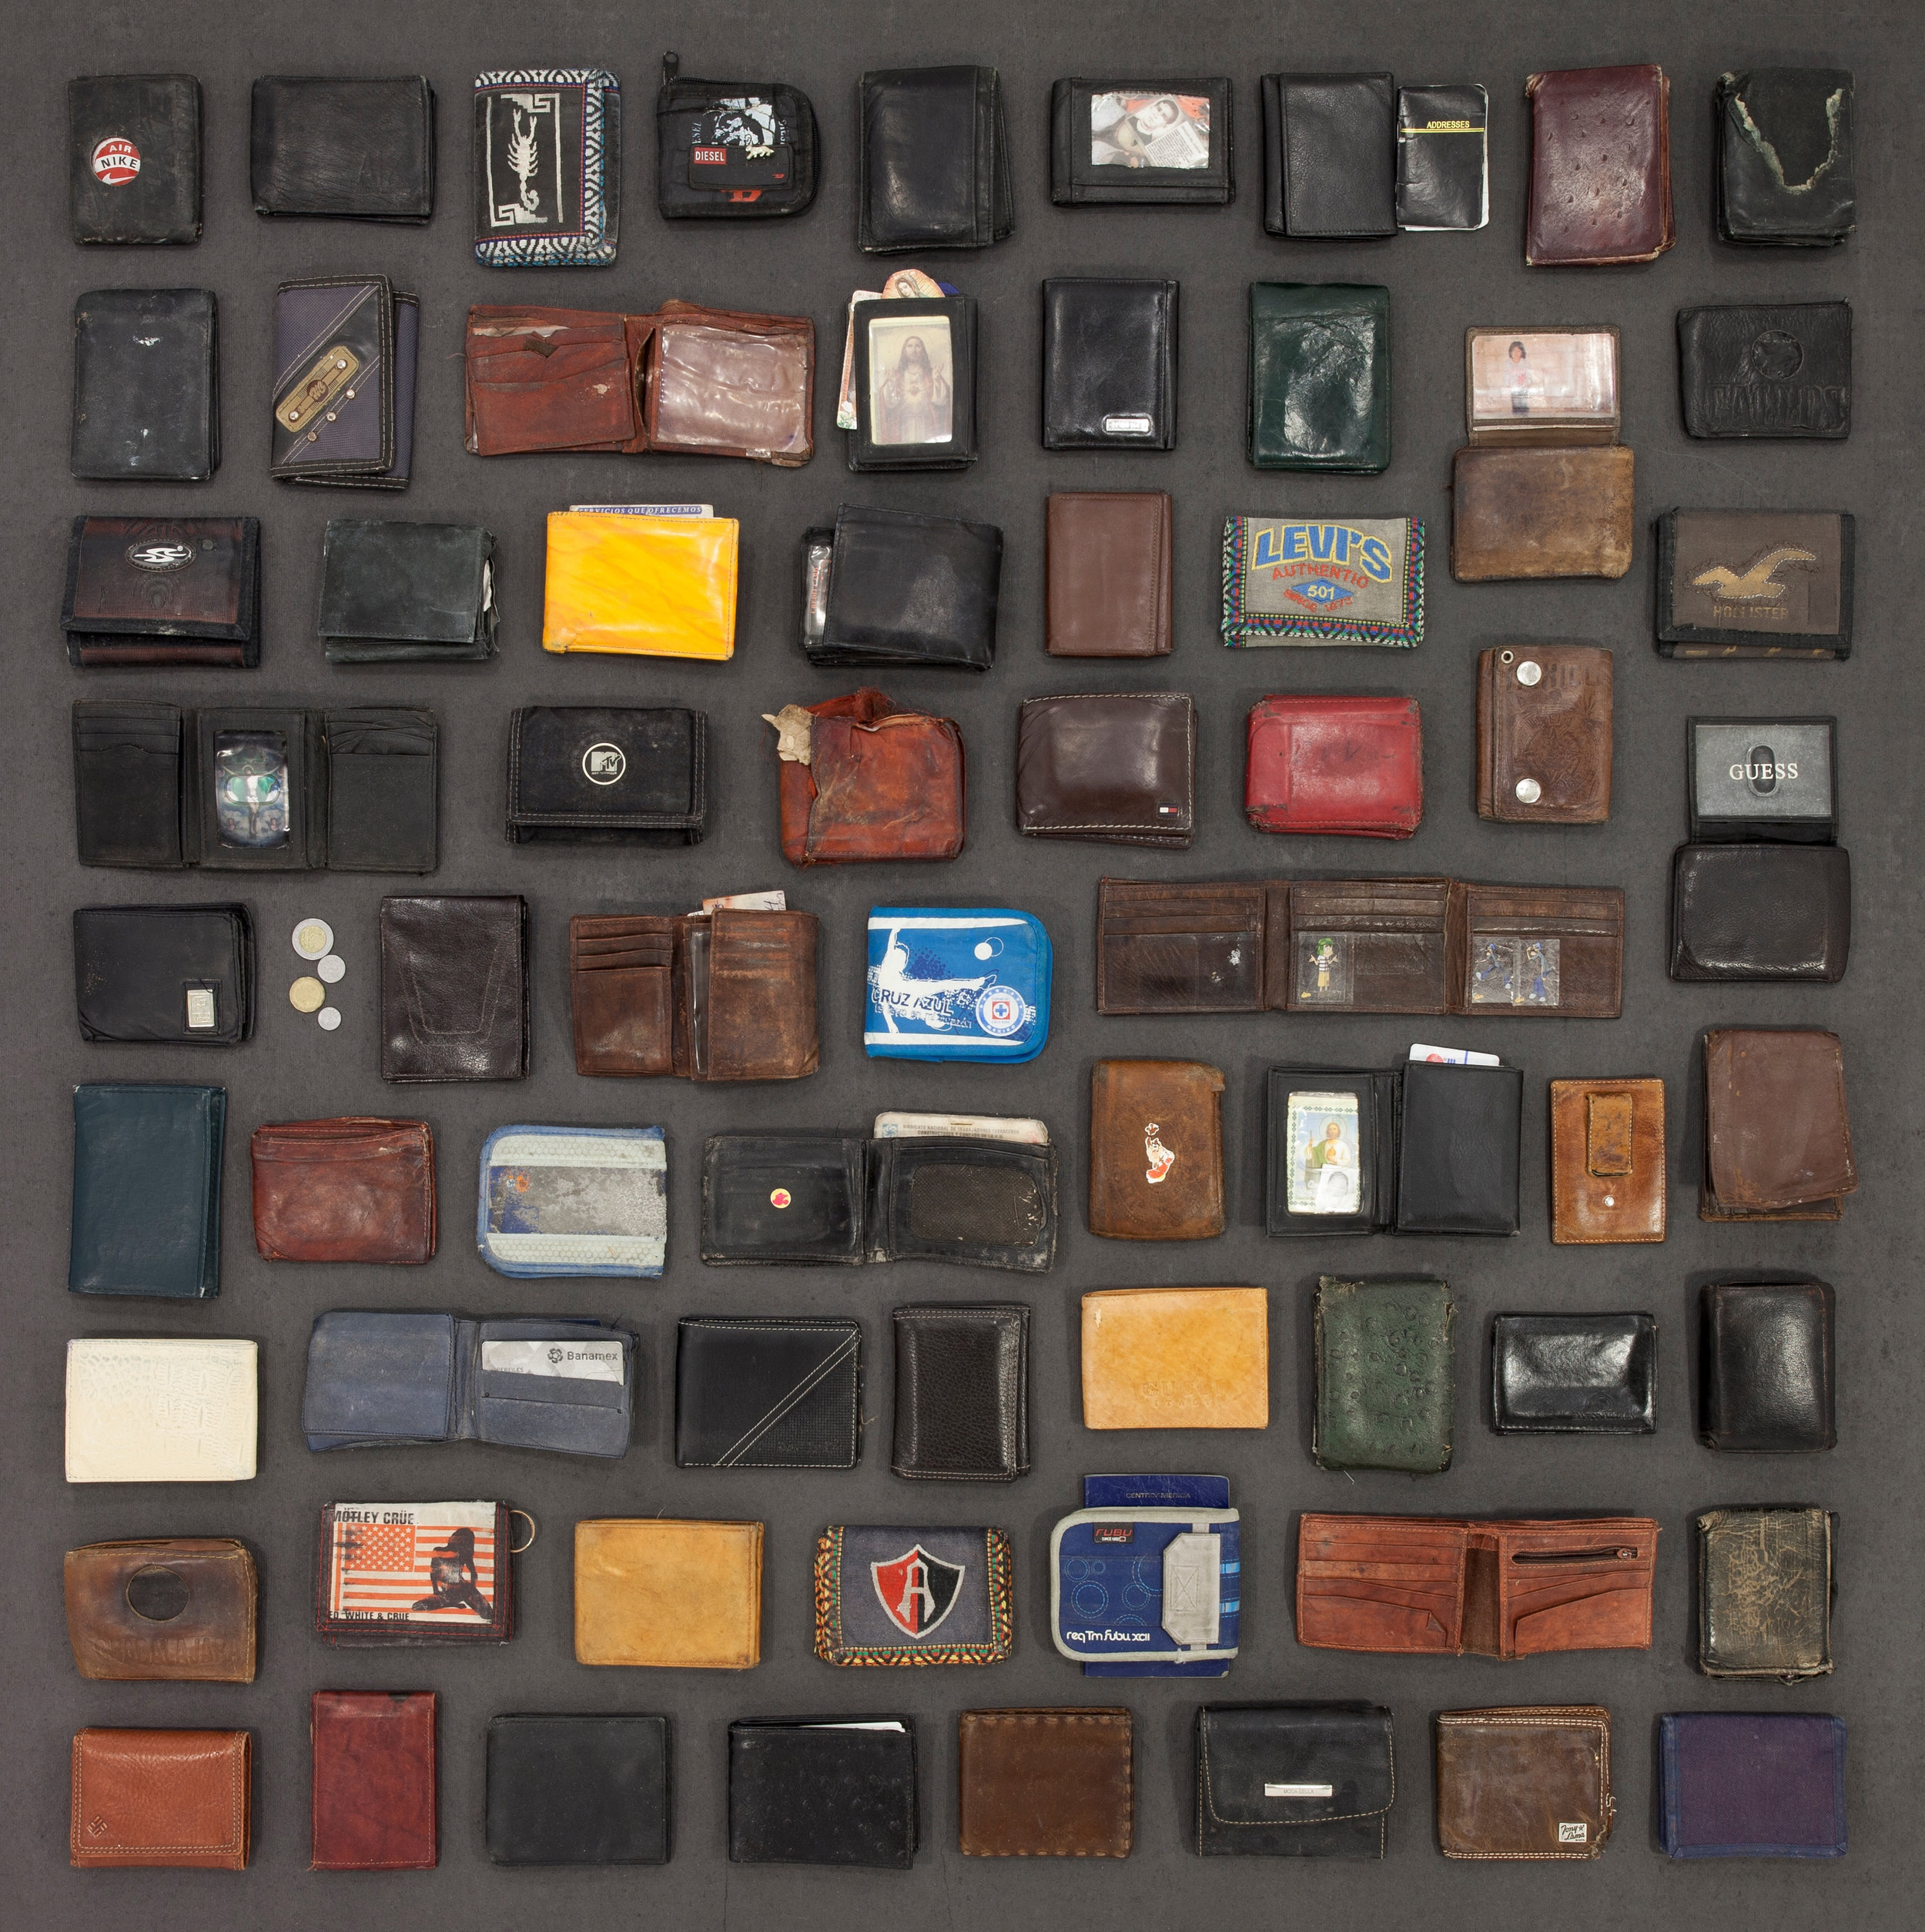 """After being apprehended, the belongings of a migrant are supposed to be placed in a property bag or remain in the backpack they traveled with. Sometimes, wallets are discarded or mistakenly left behind when they are transported to various law enforcement facilities. They are deported with no identification.  Billfolds and Wallets  Medium: Photography  Dimensions: 36 x 35.25 x 1.5  Year of Creation: 2013  Price $3,800 (framed); $3,200 (unframed 36"""" x 36"""" print)  For sales inquiries, please contact dlutzick@yahoo.com with Winslow Arts Trust Museum"""